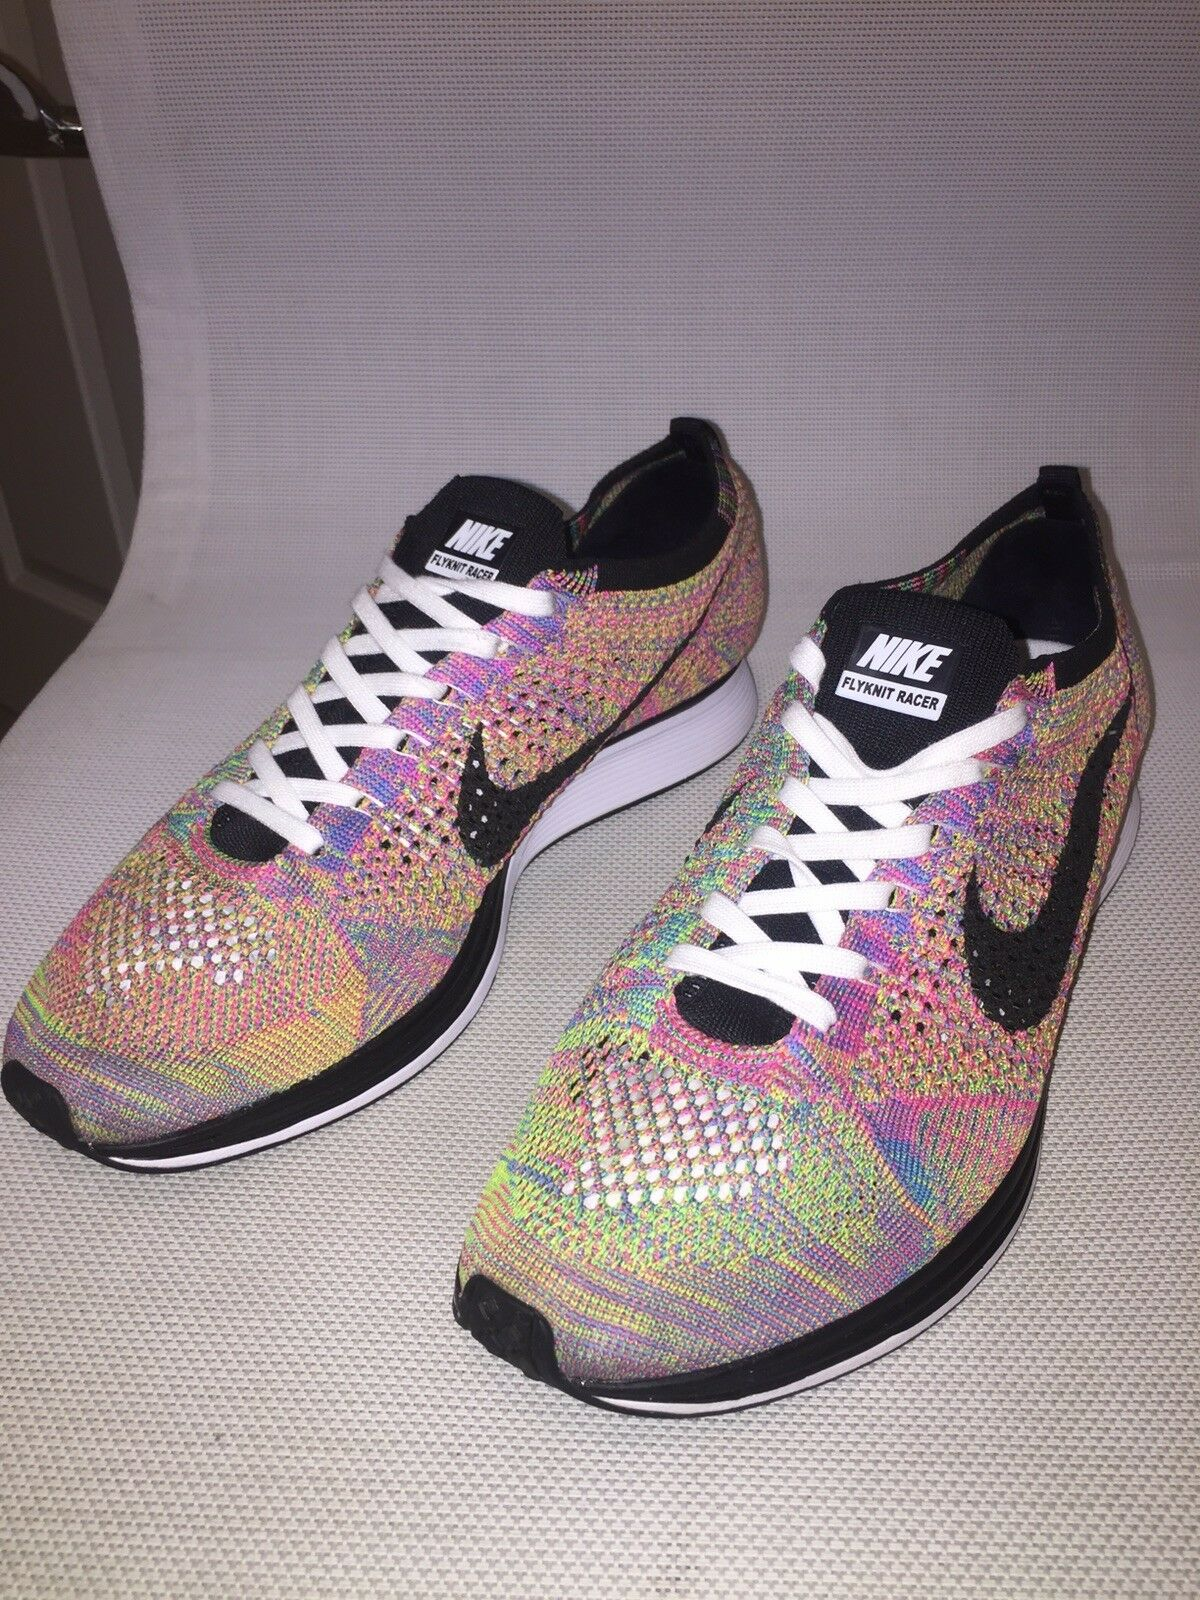 Nike UK Flyknit Racer SP Milan Special Edition US 10.5 UK Nike 9.5 624194 004 2669e4